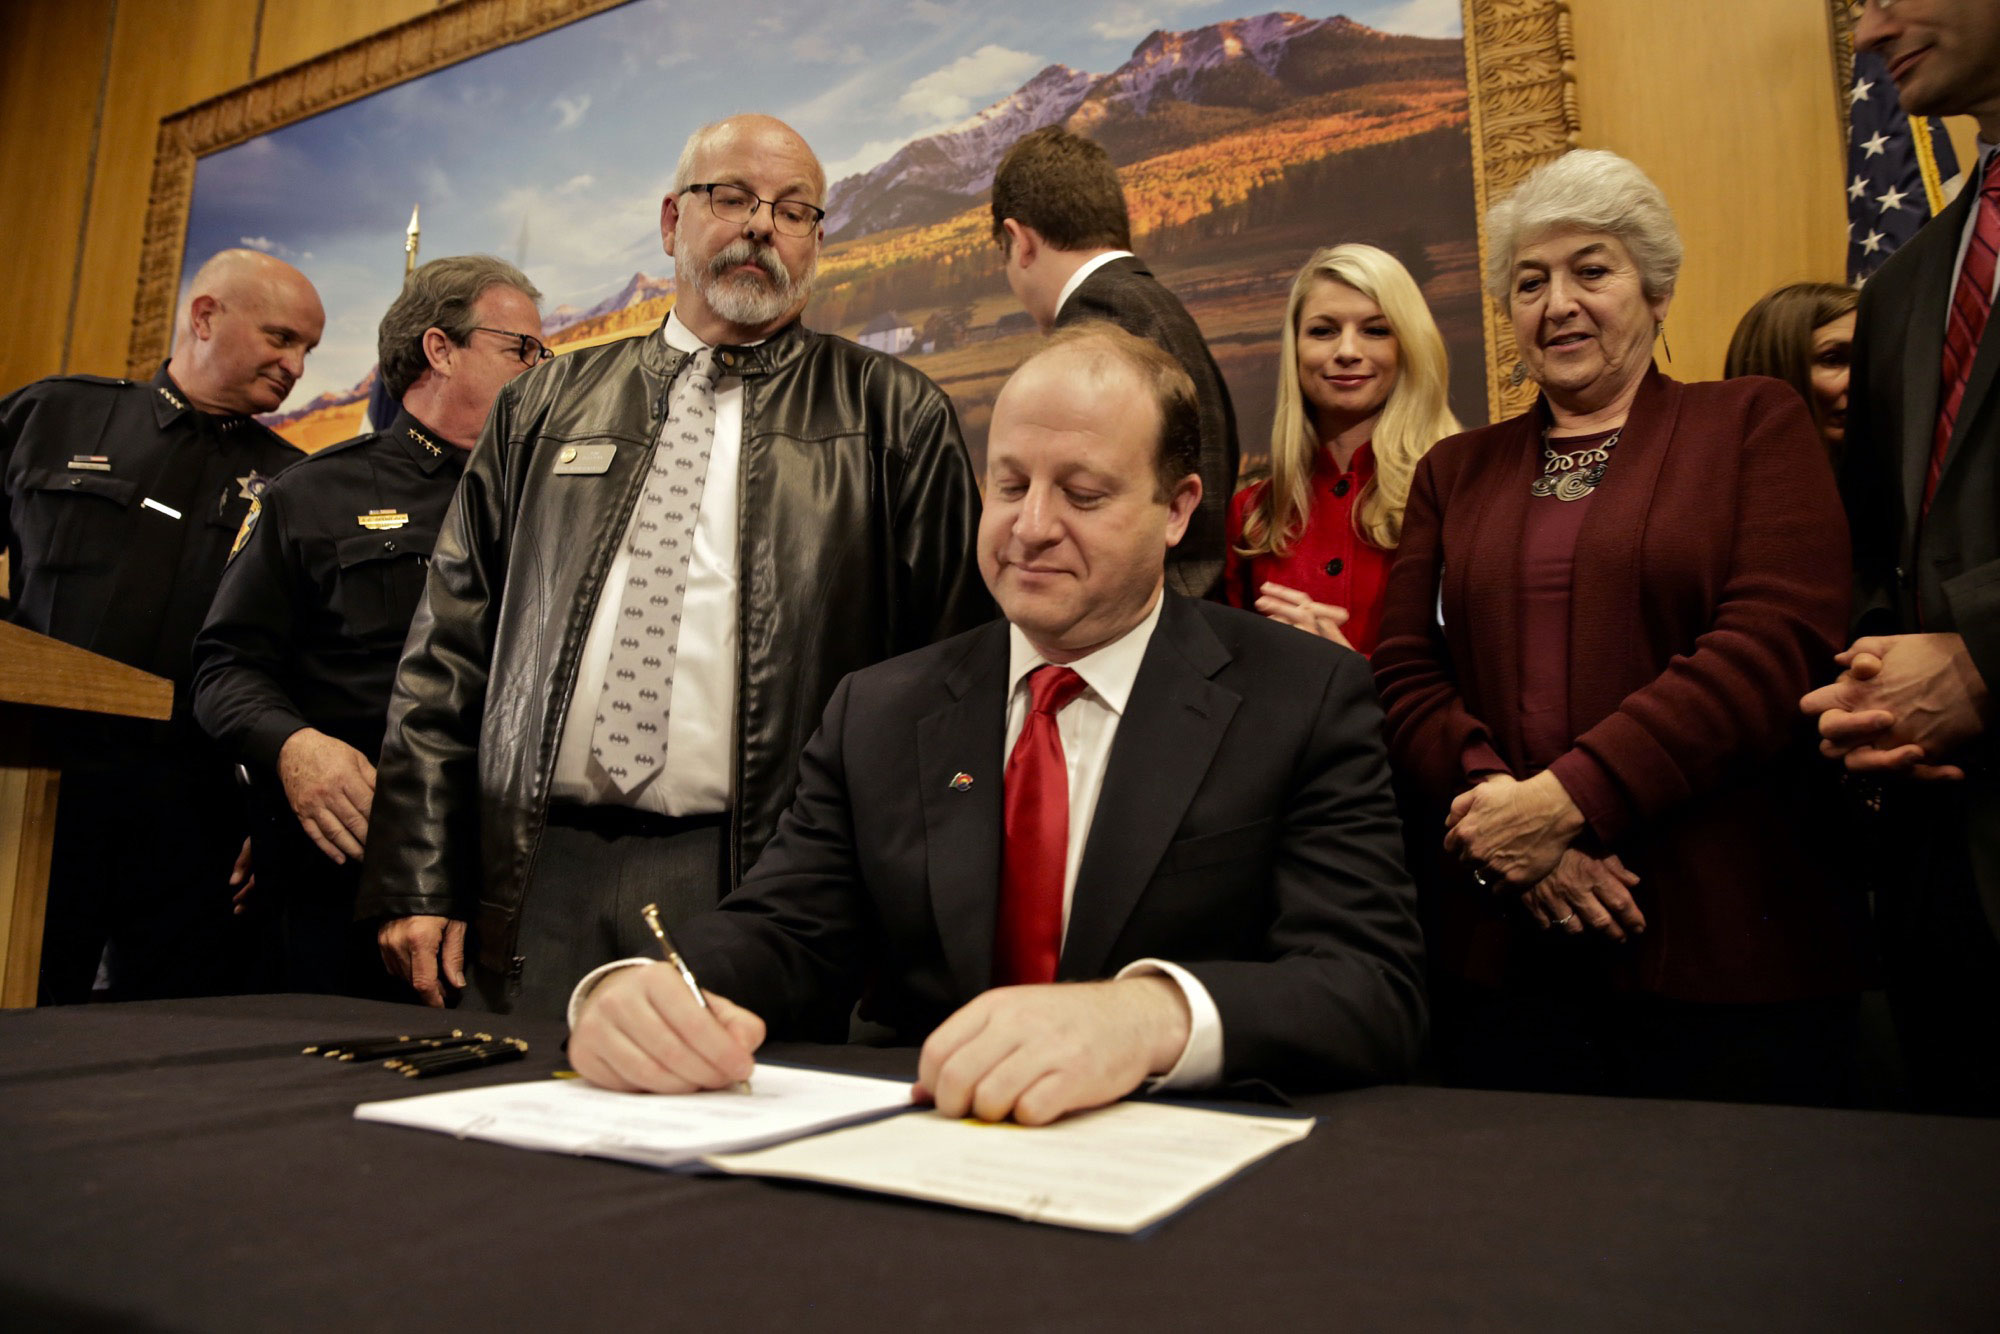 Photo: Gov. Jared Polis Rep. Tom Sullivan Red Flag Gun Law Signing